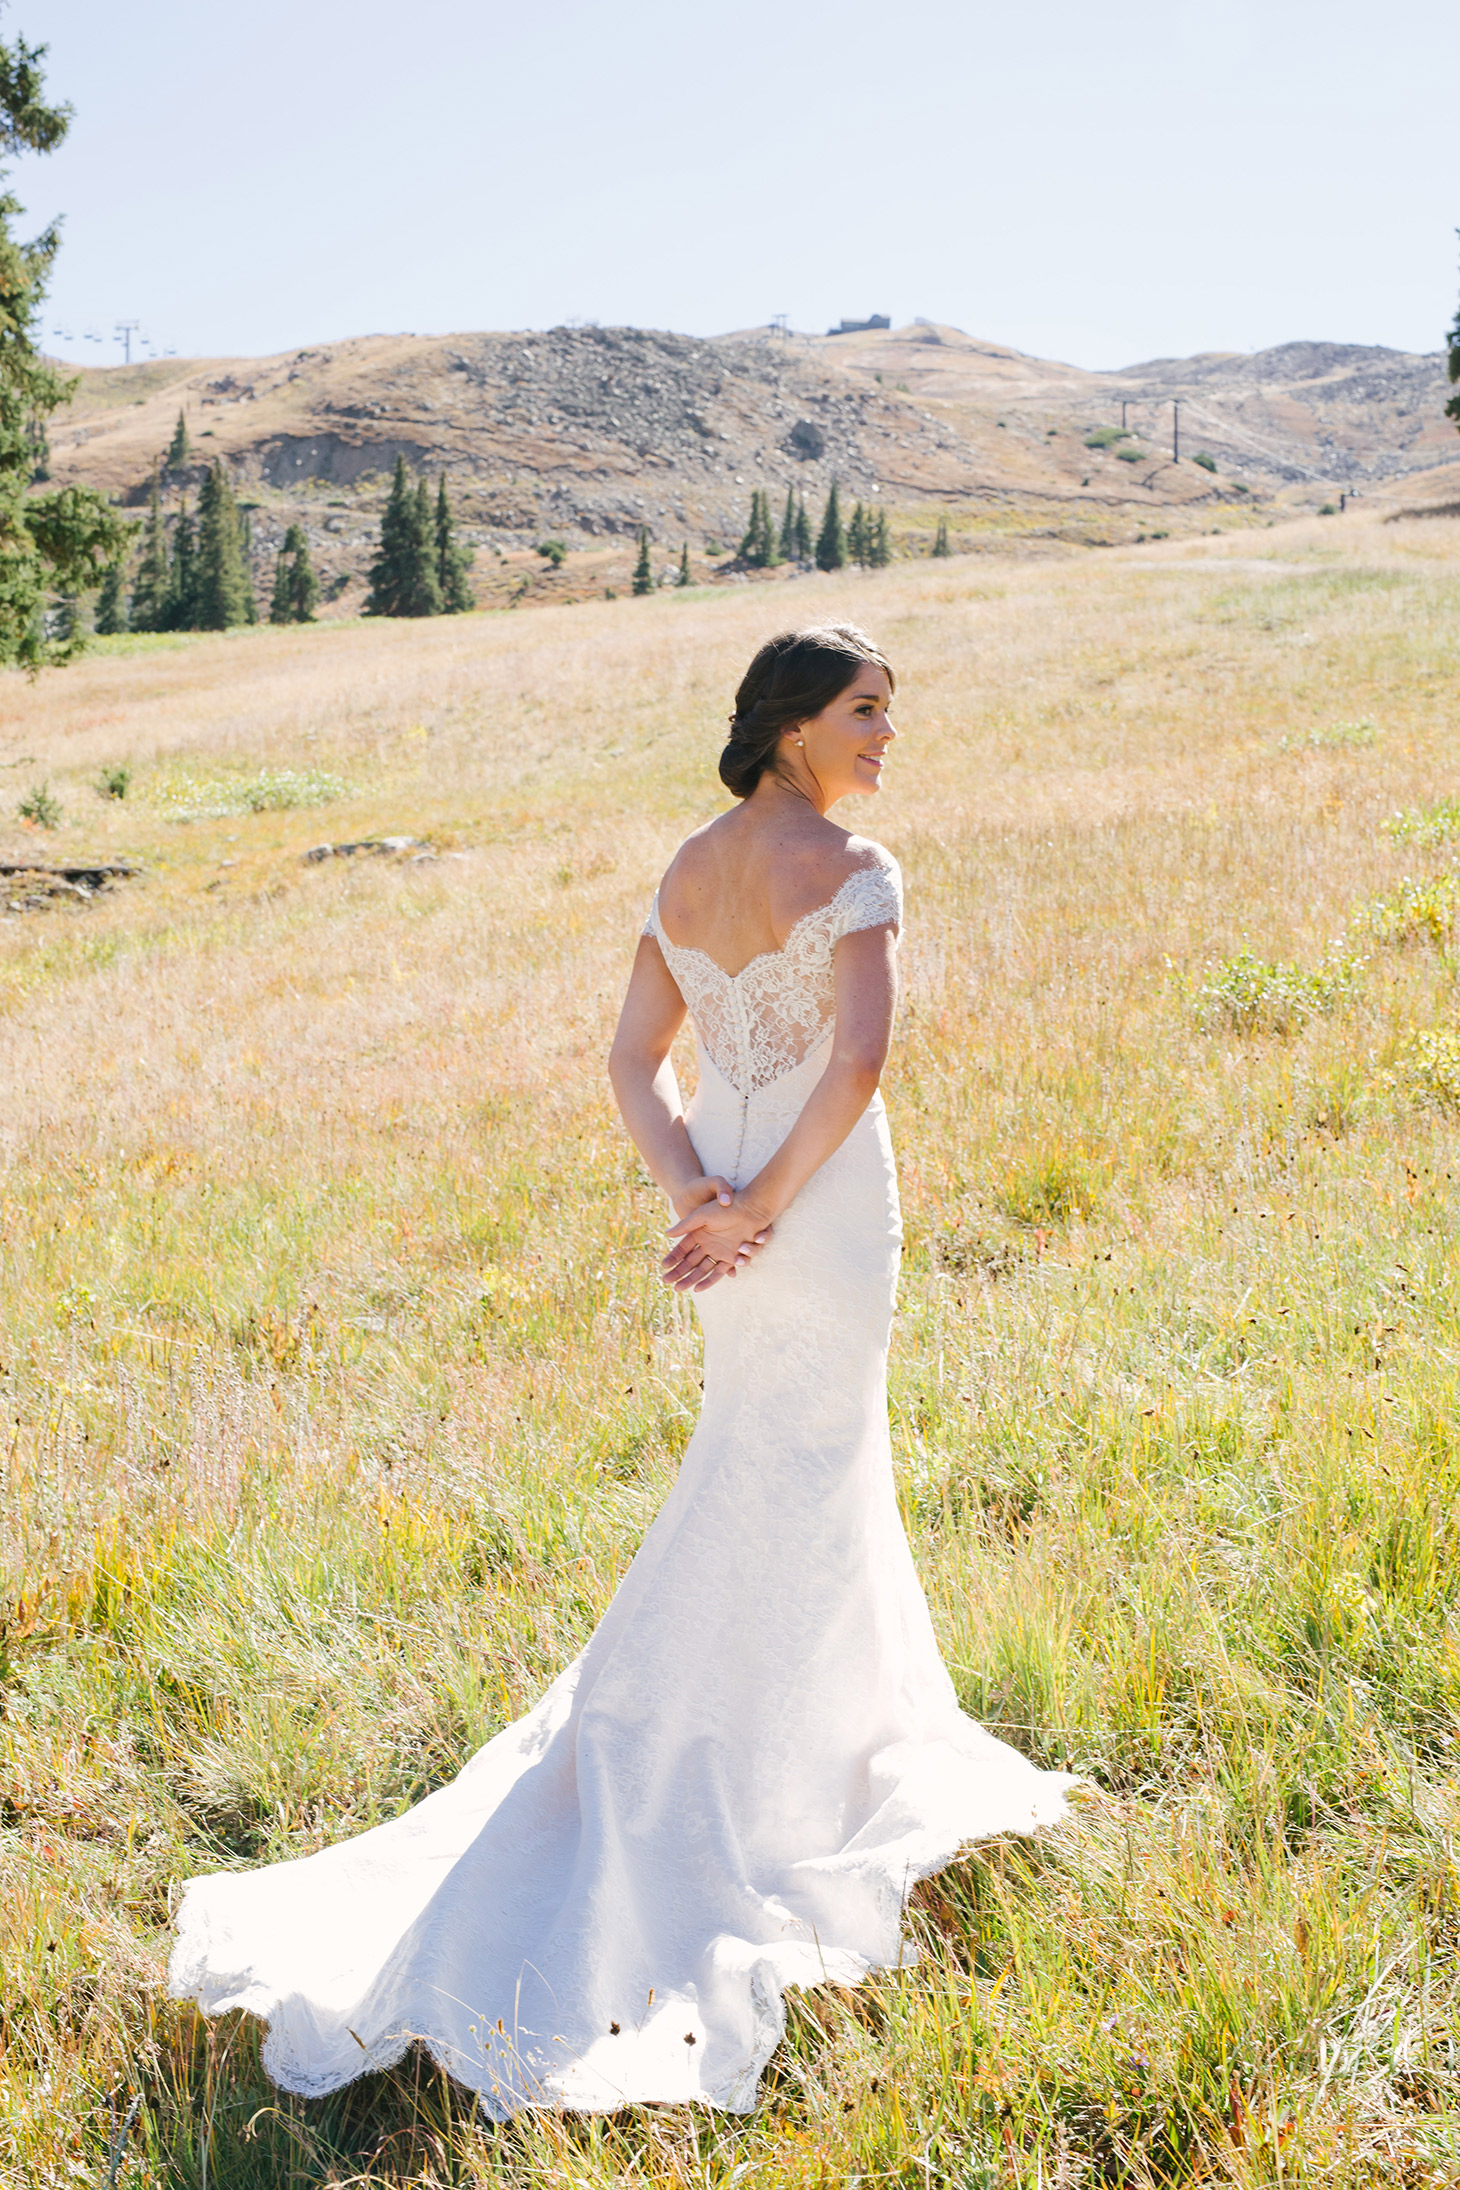 Megan-Newton-Photography-Best-Wedding-Photos-2015-224